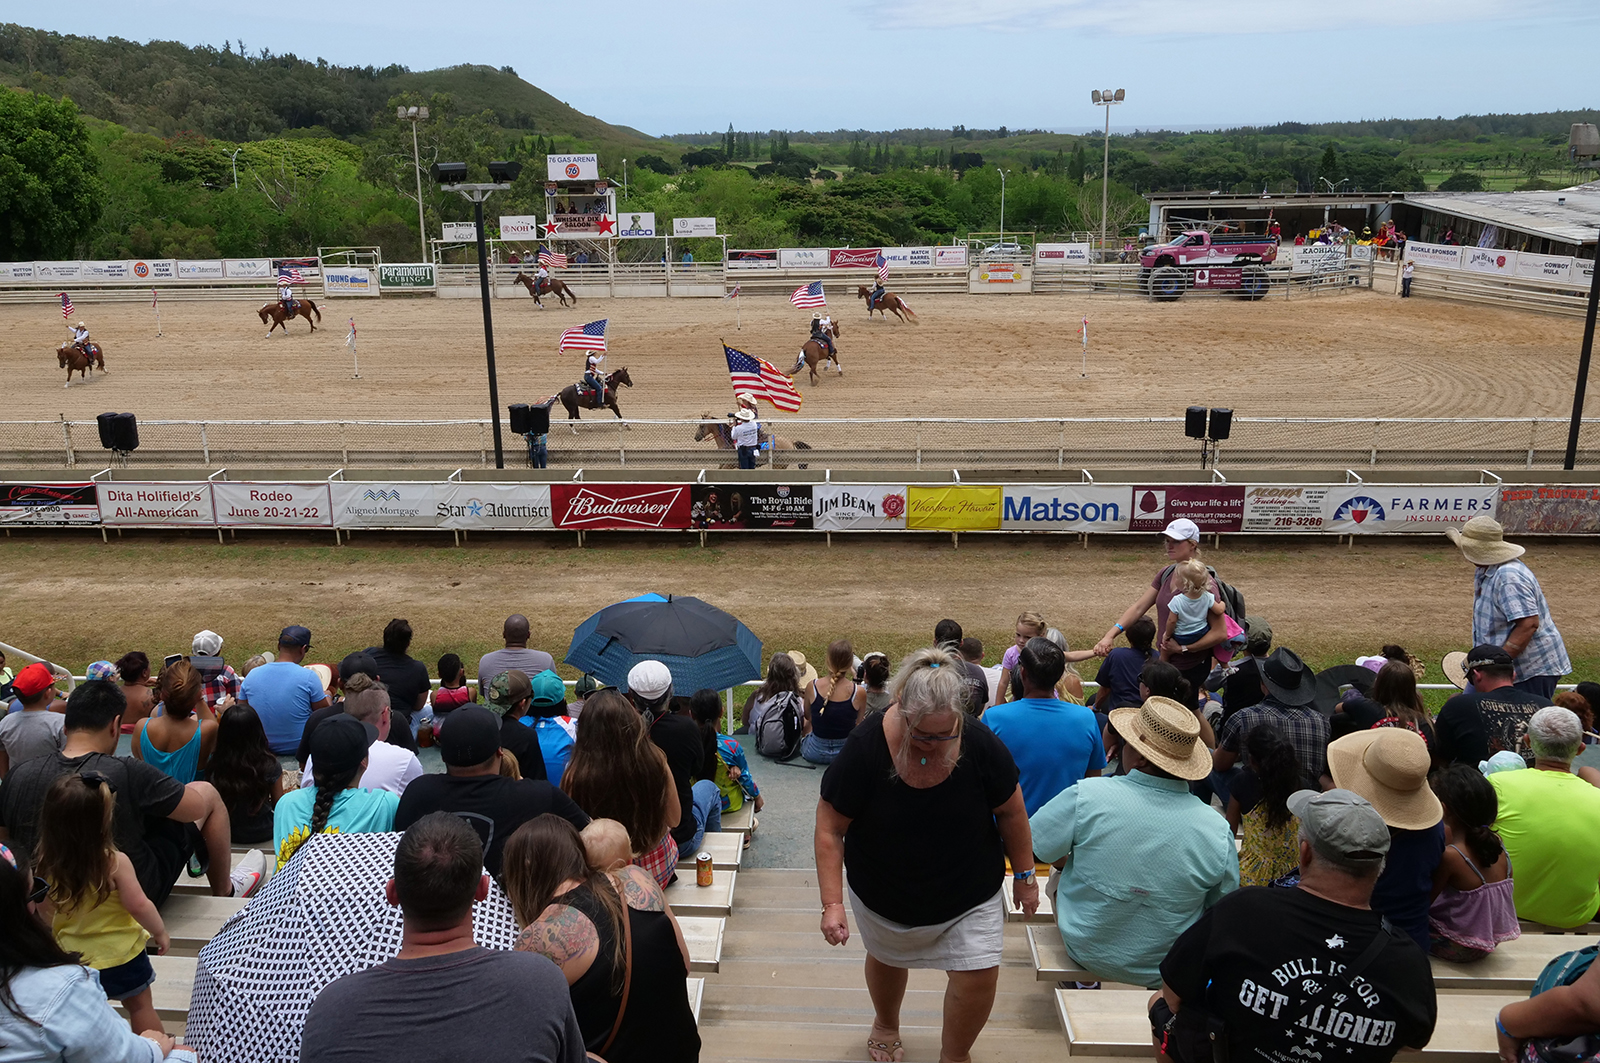 <p>Spectators watch the opening ceremony of the June 22 rodeo, which draws thousands of people each year.</p>